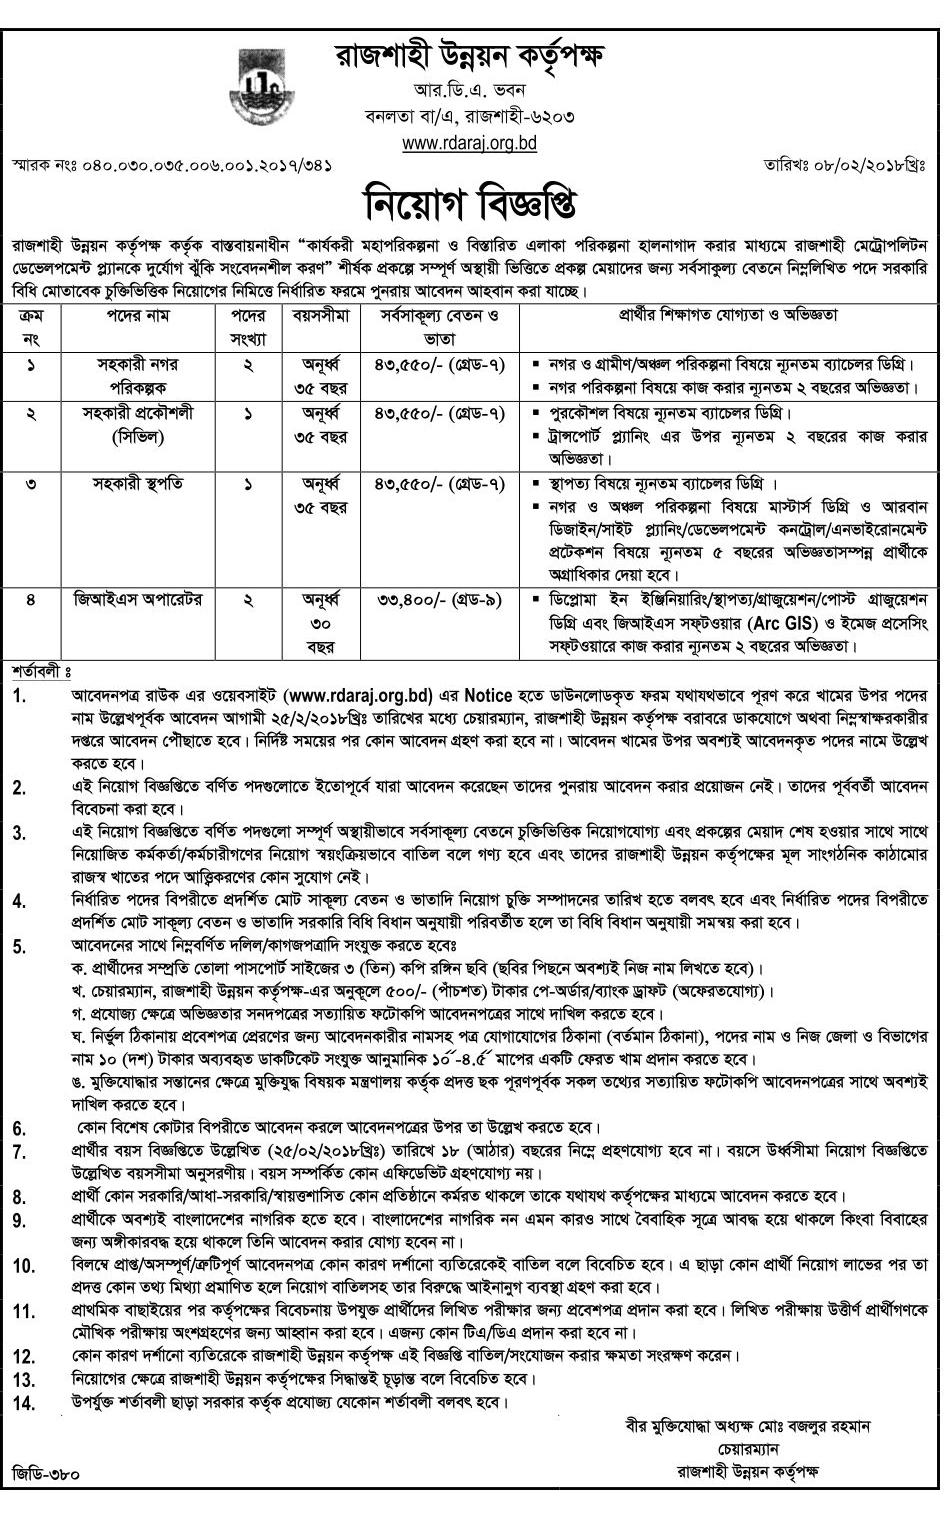 RDA - Rajshahi Development Authority Job Circular 2018